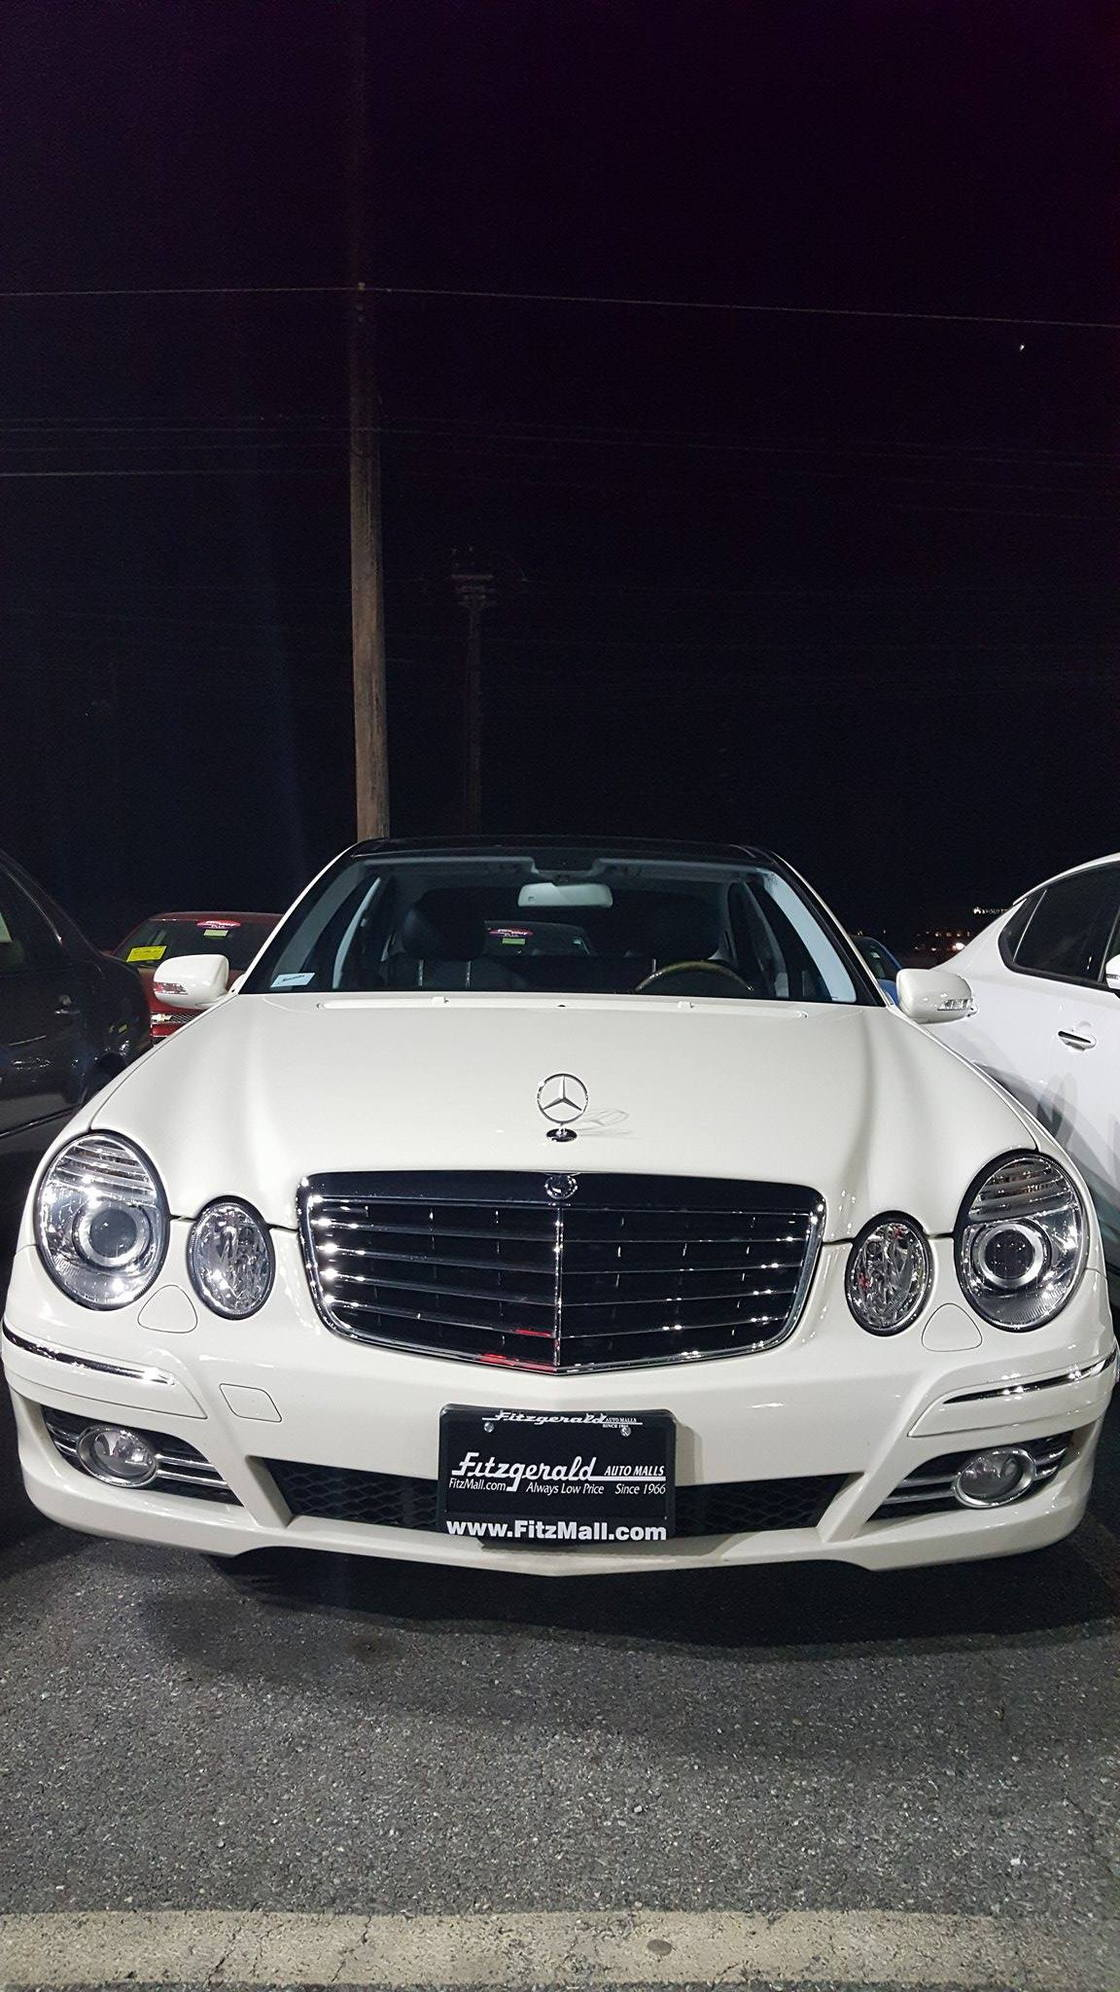 Just Bought My First Mb - 07 E350 4matic